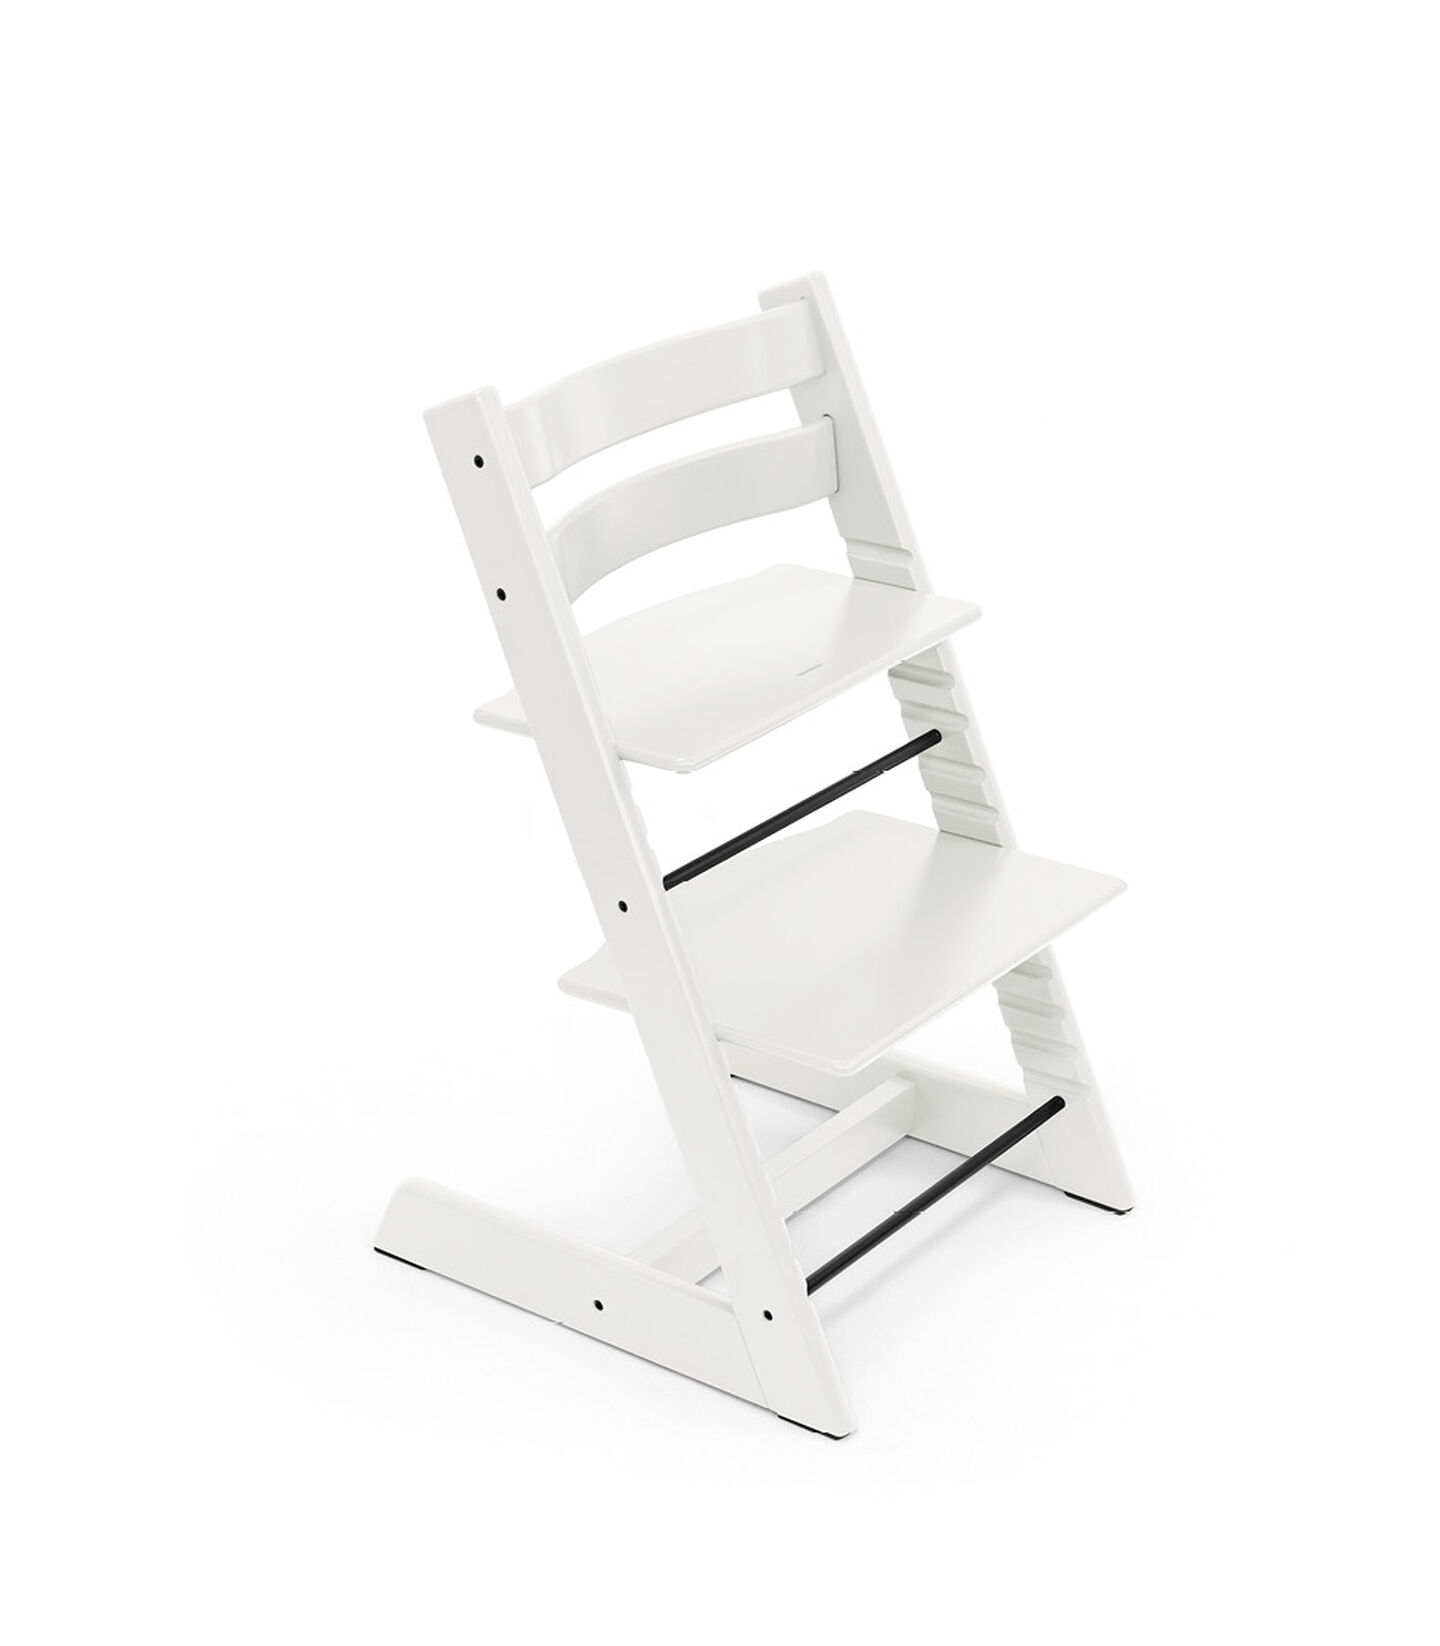 Tripp Trapp® Barnestol White, White, mainview view 2